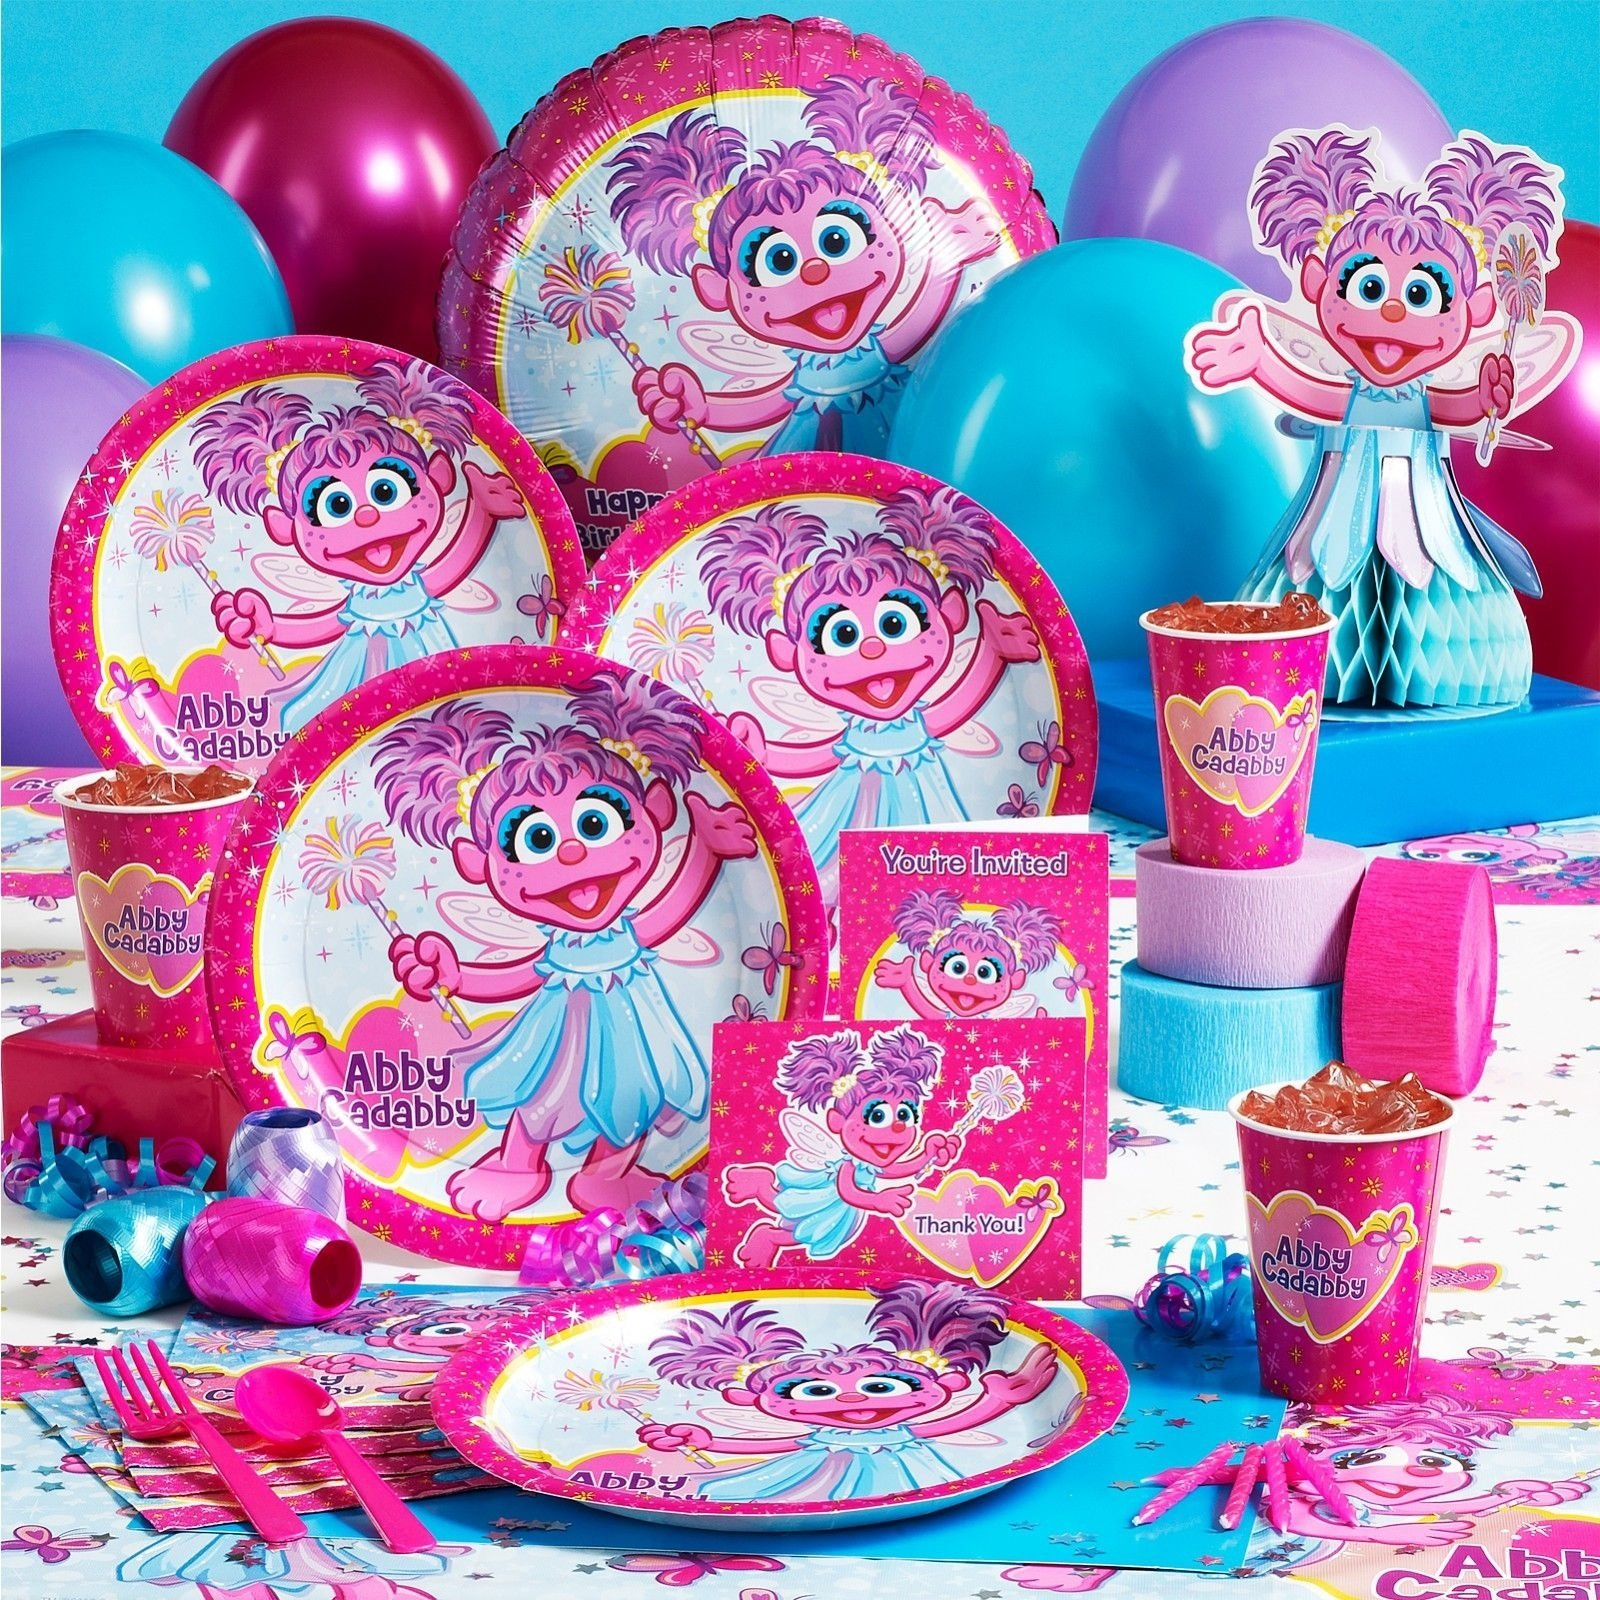 10 Stylish Abby Cadabby Birthday Party Ideas